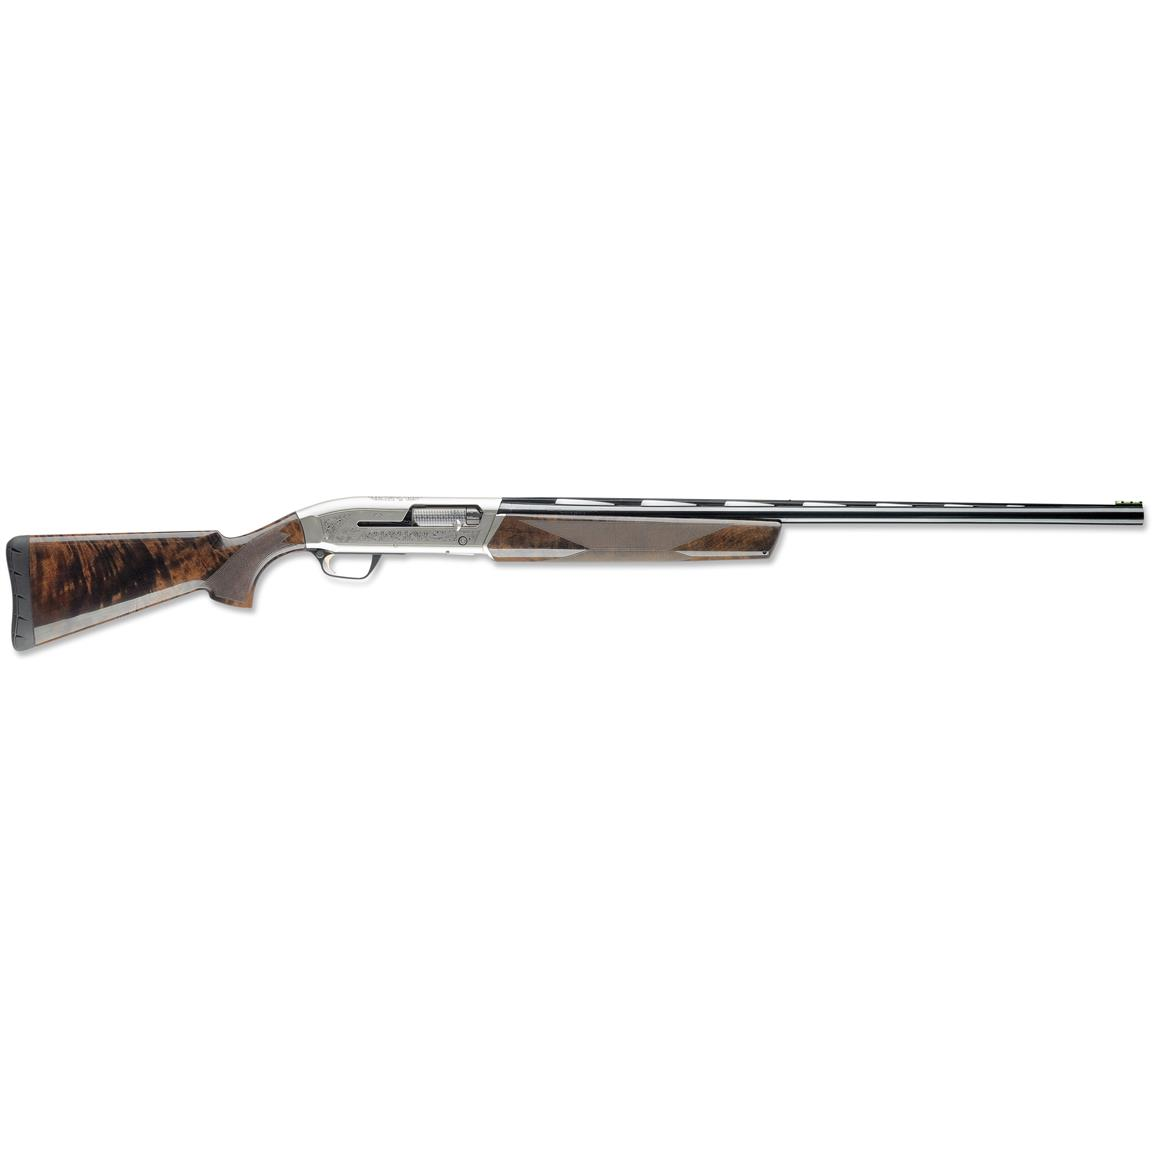 "Browning Maxus Sporting, Semi-Automatic, 12 Gauge, 30"" Barrel, 4 1 Rounds"